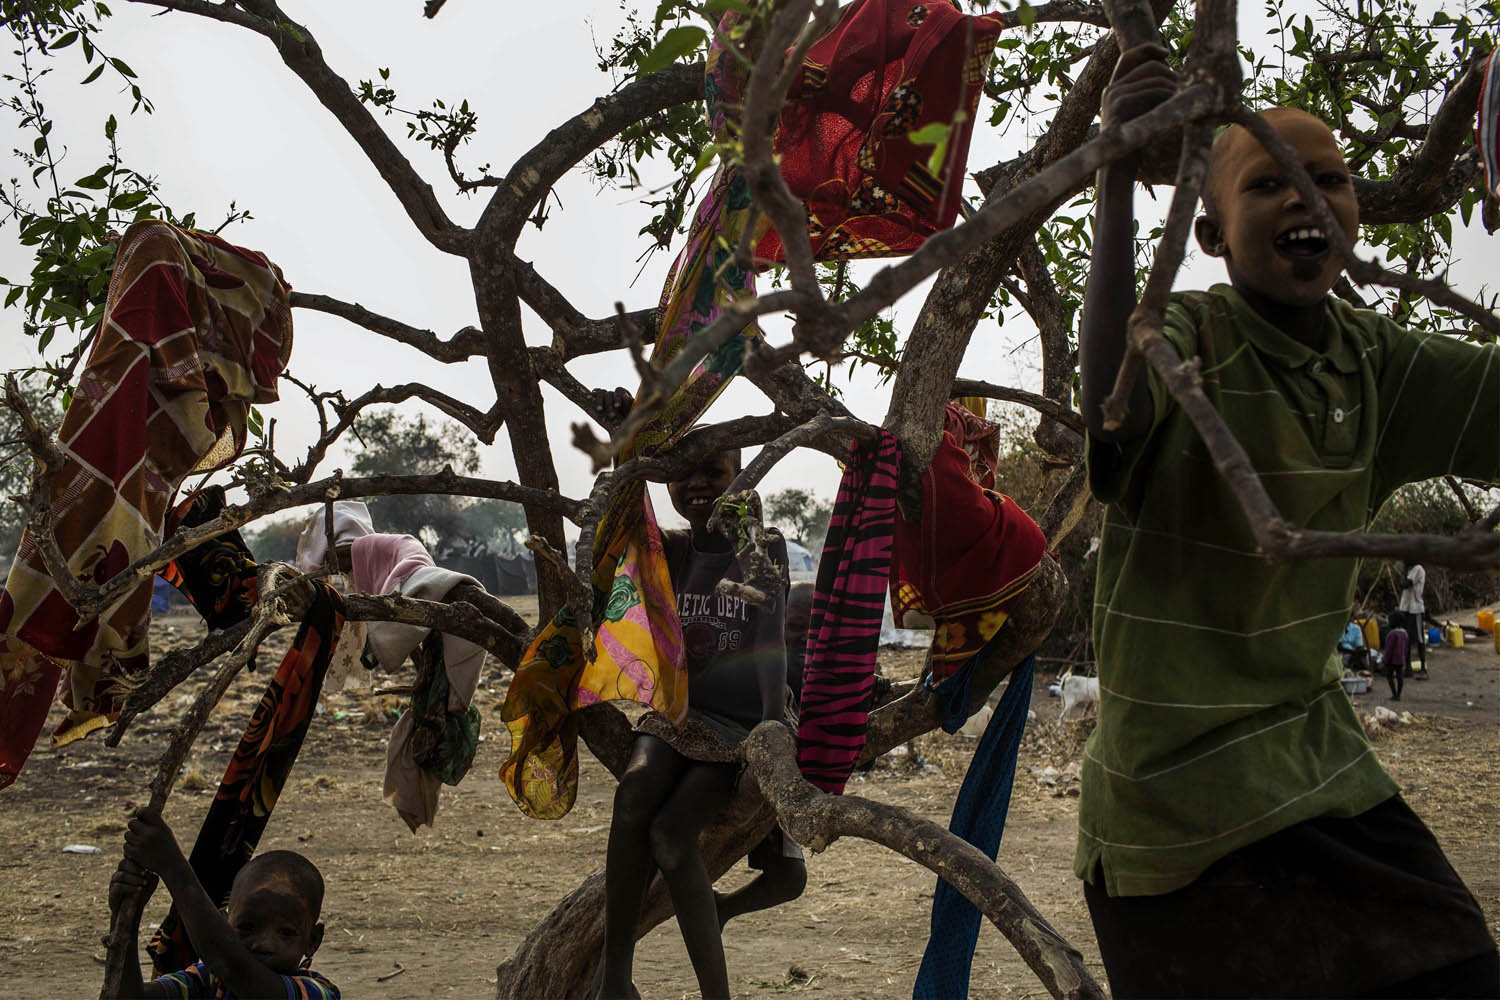 Feb. 7, 2014. Children play in a tree in the temporary camp of South Sudanese Internally Displaced People (IDP's) in Mingkaman, South Sudan.